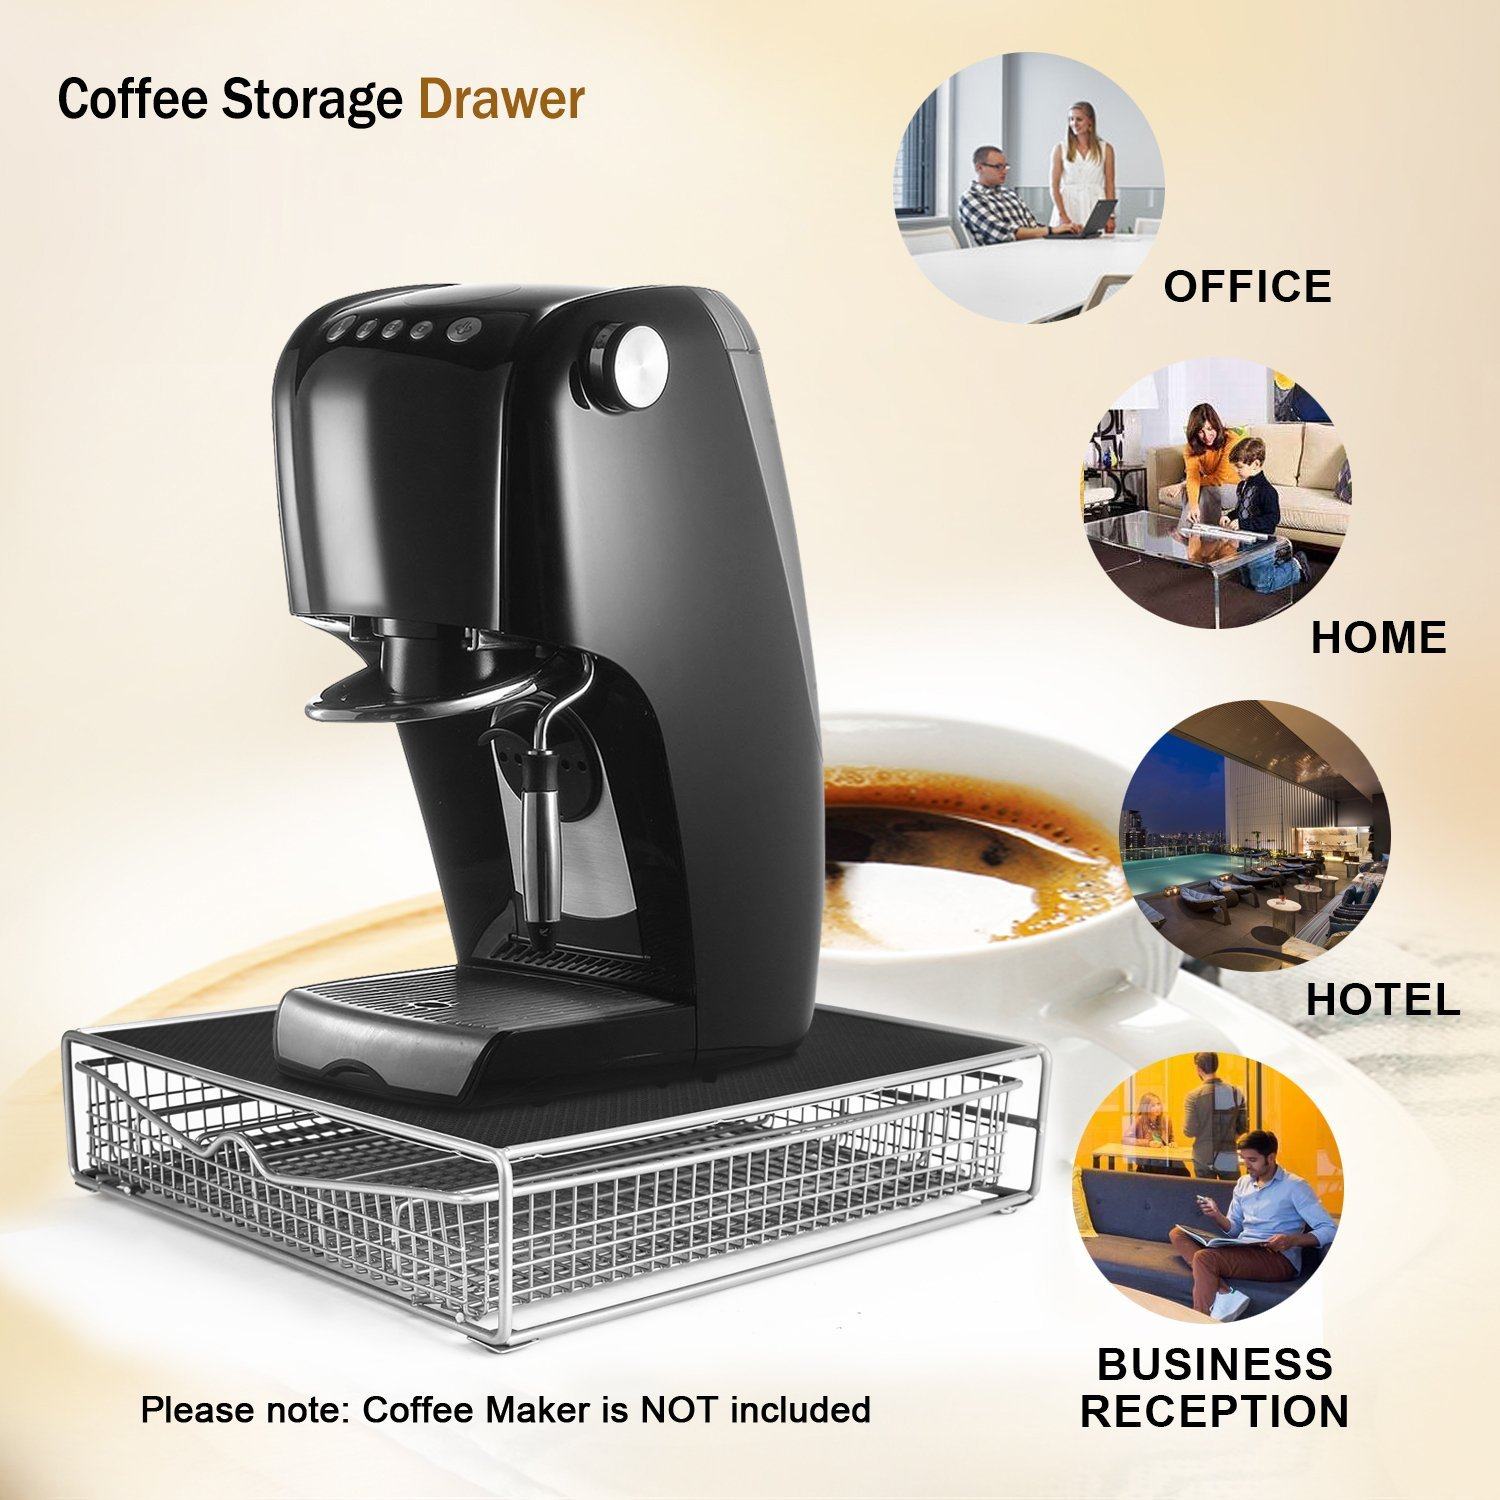 Fitnate Coffee Drawer for K-cup Coffee Pod Coffee Storage Organizer for 36 K-Cup Storage Drawer Holder with a Rack Mat for most Coffee K Cup Pods or Tea and Coffee Makers